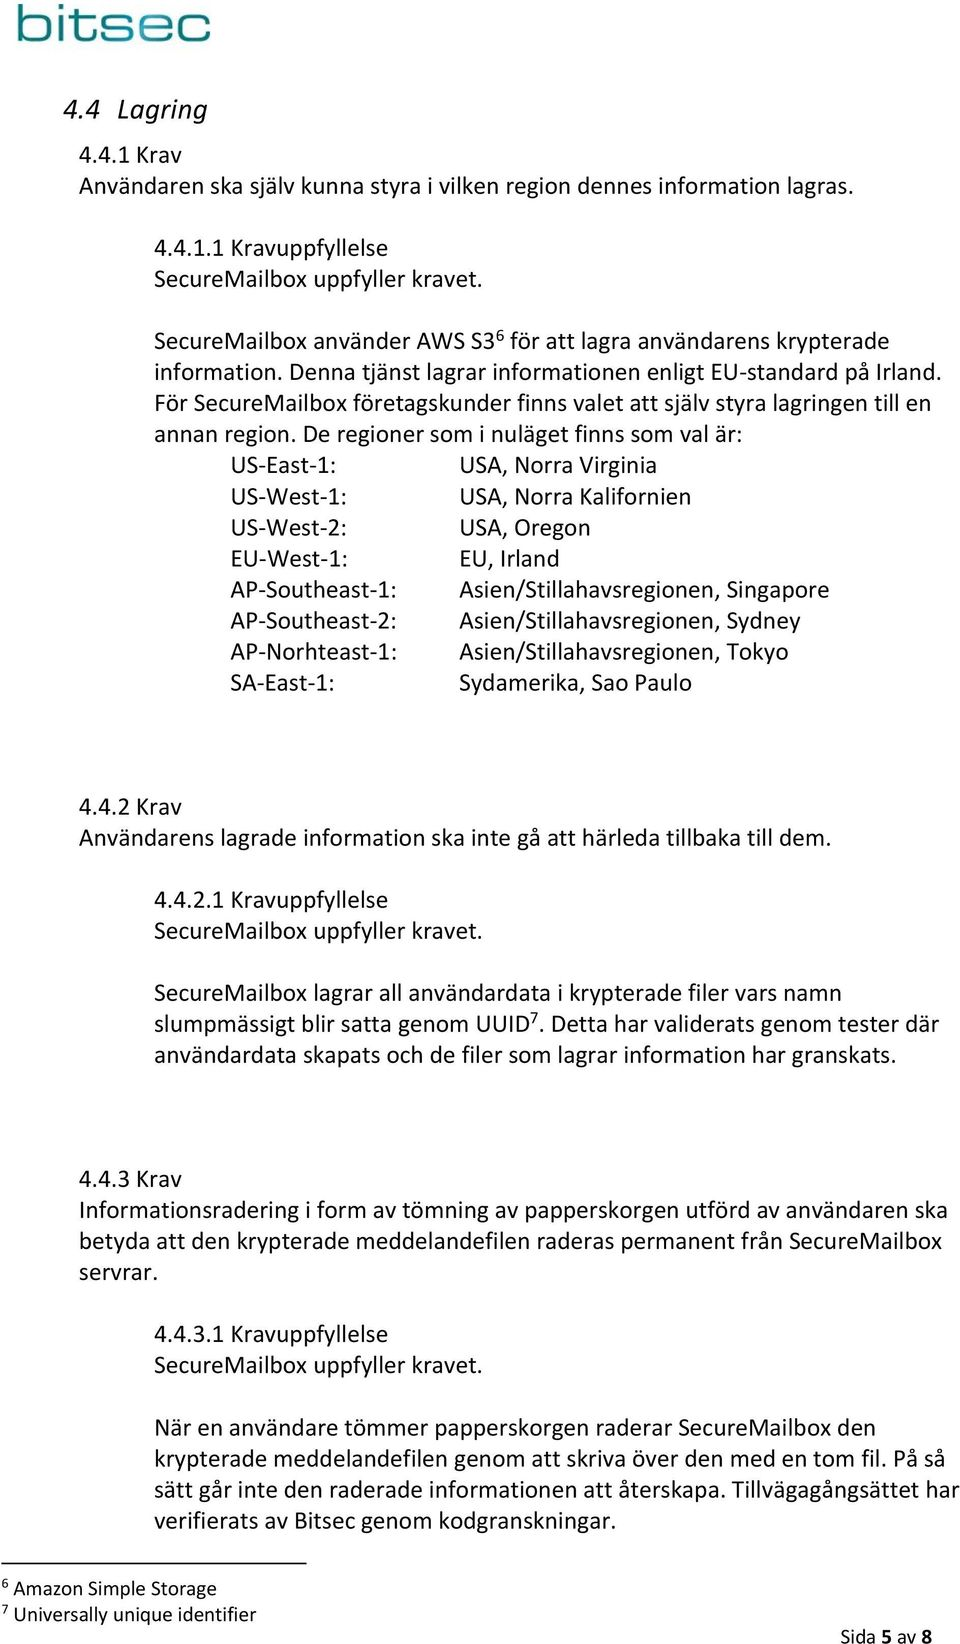 De regioner som i nuläget finns som val är: US East 1: USA, Norra Virginia US West 1: USA, Norra Kalifornien US West 2: USA, Oregon EU West 1: EU, Irland AP Southeast 1: Asien/Stillahavsregionen,